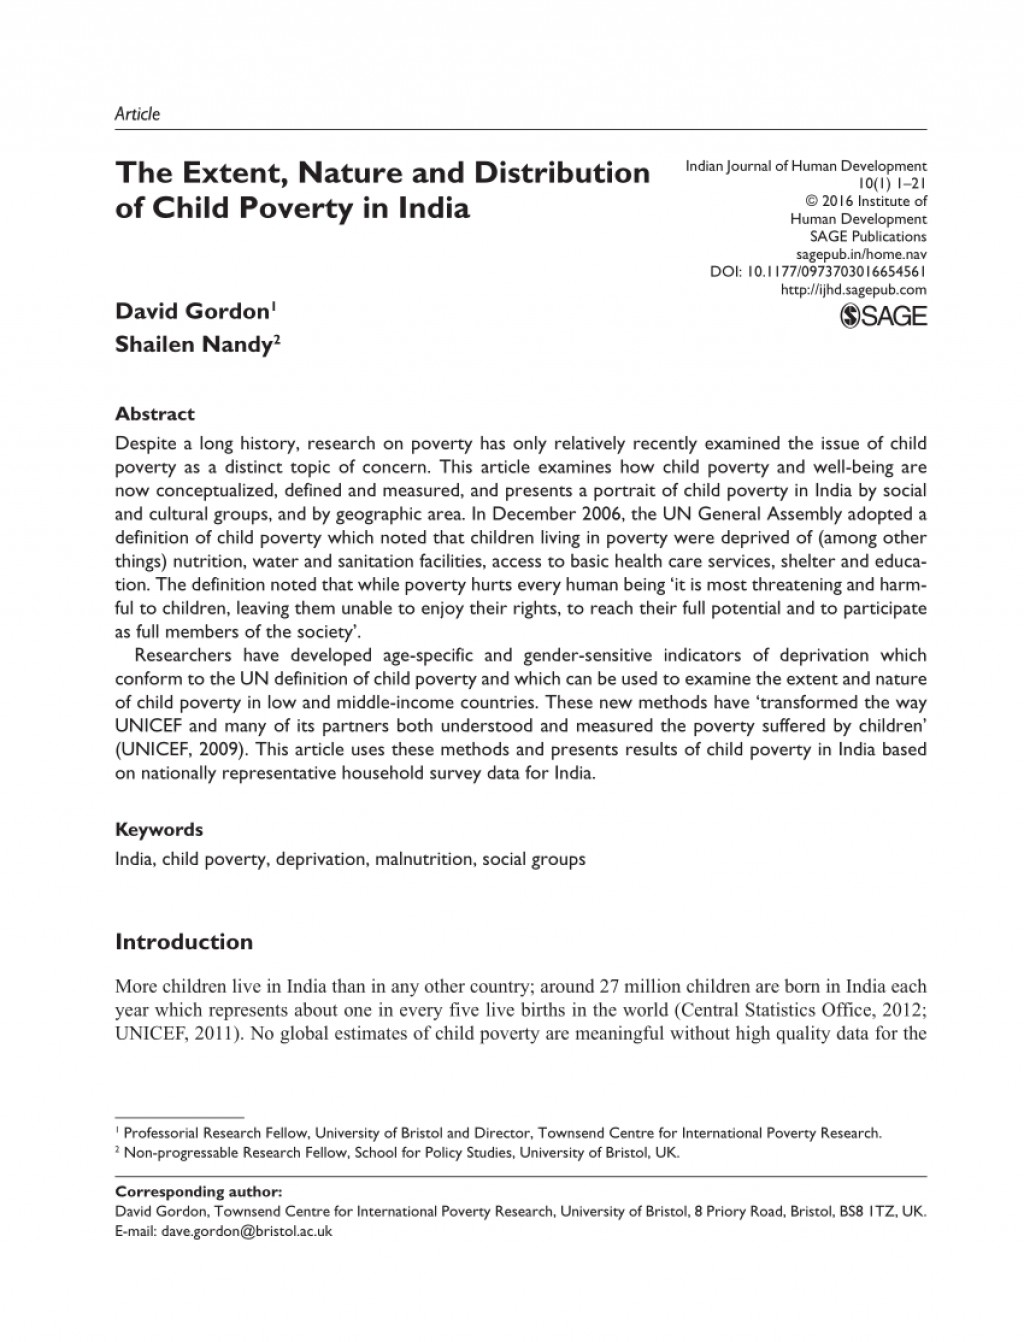 003 Poverty In India Research Paper Pdf Impressive Large